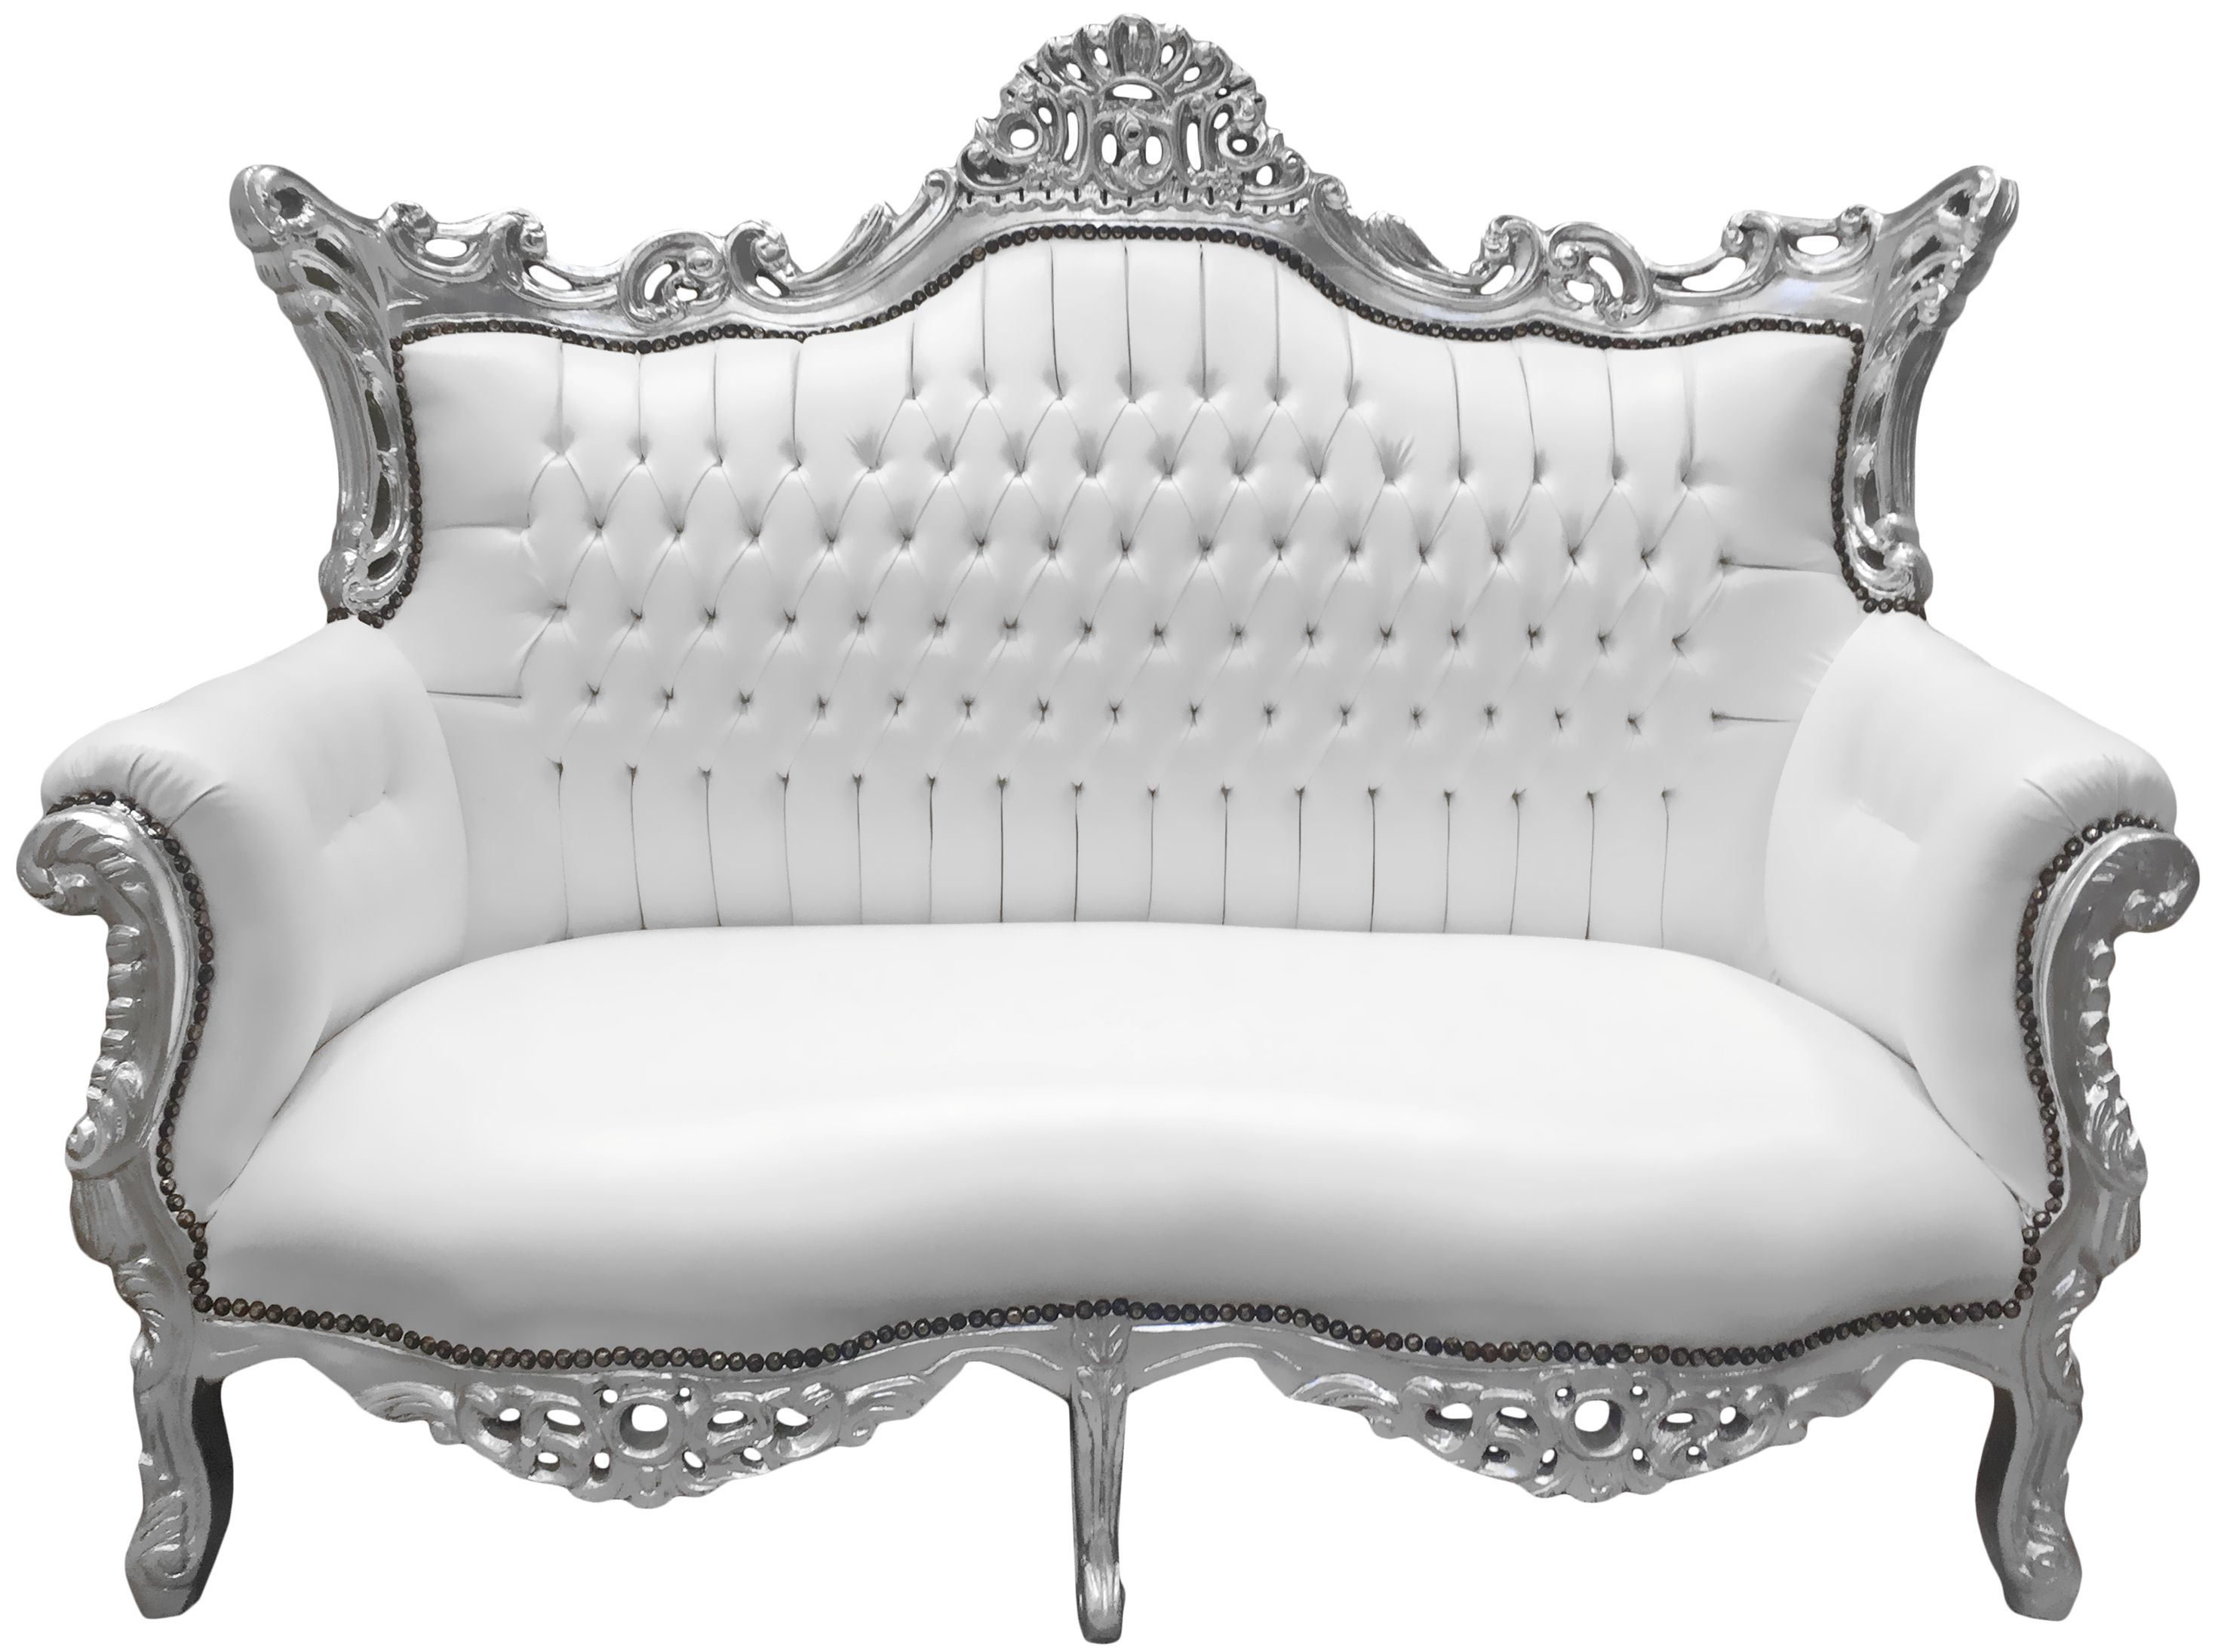 Antiques Giant Sofa Rococo Style Bench Royal Sofa Wood Baroque French Louis Xv Carved Sofas